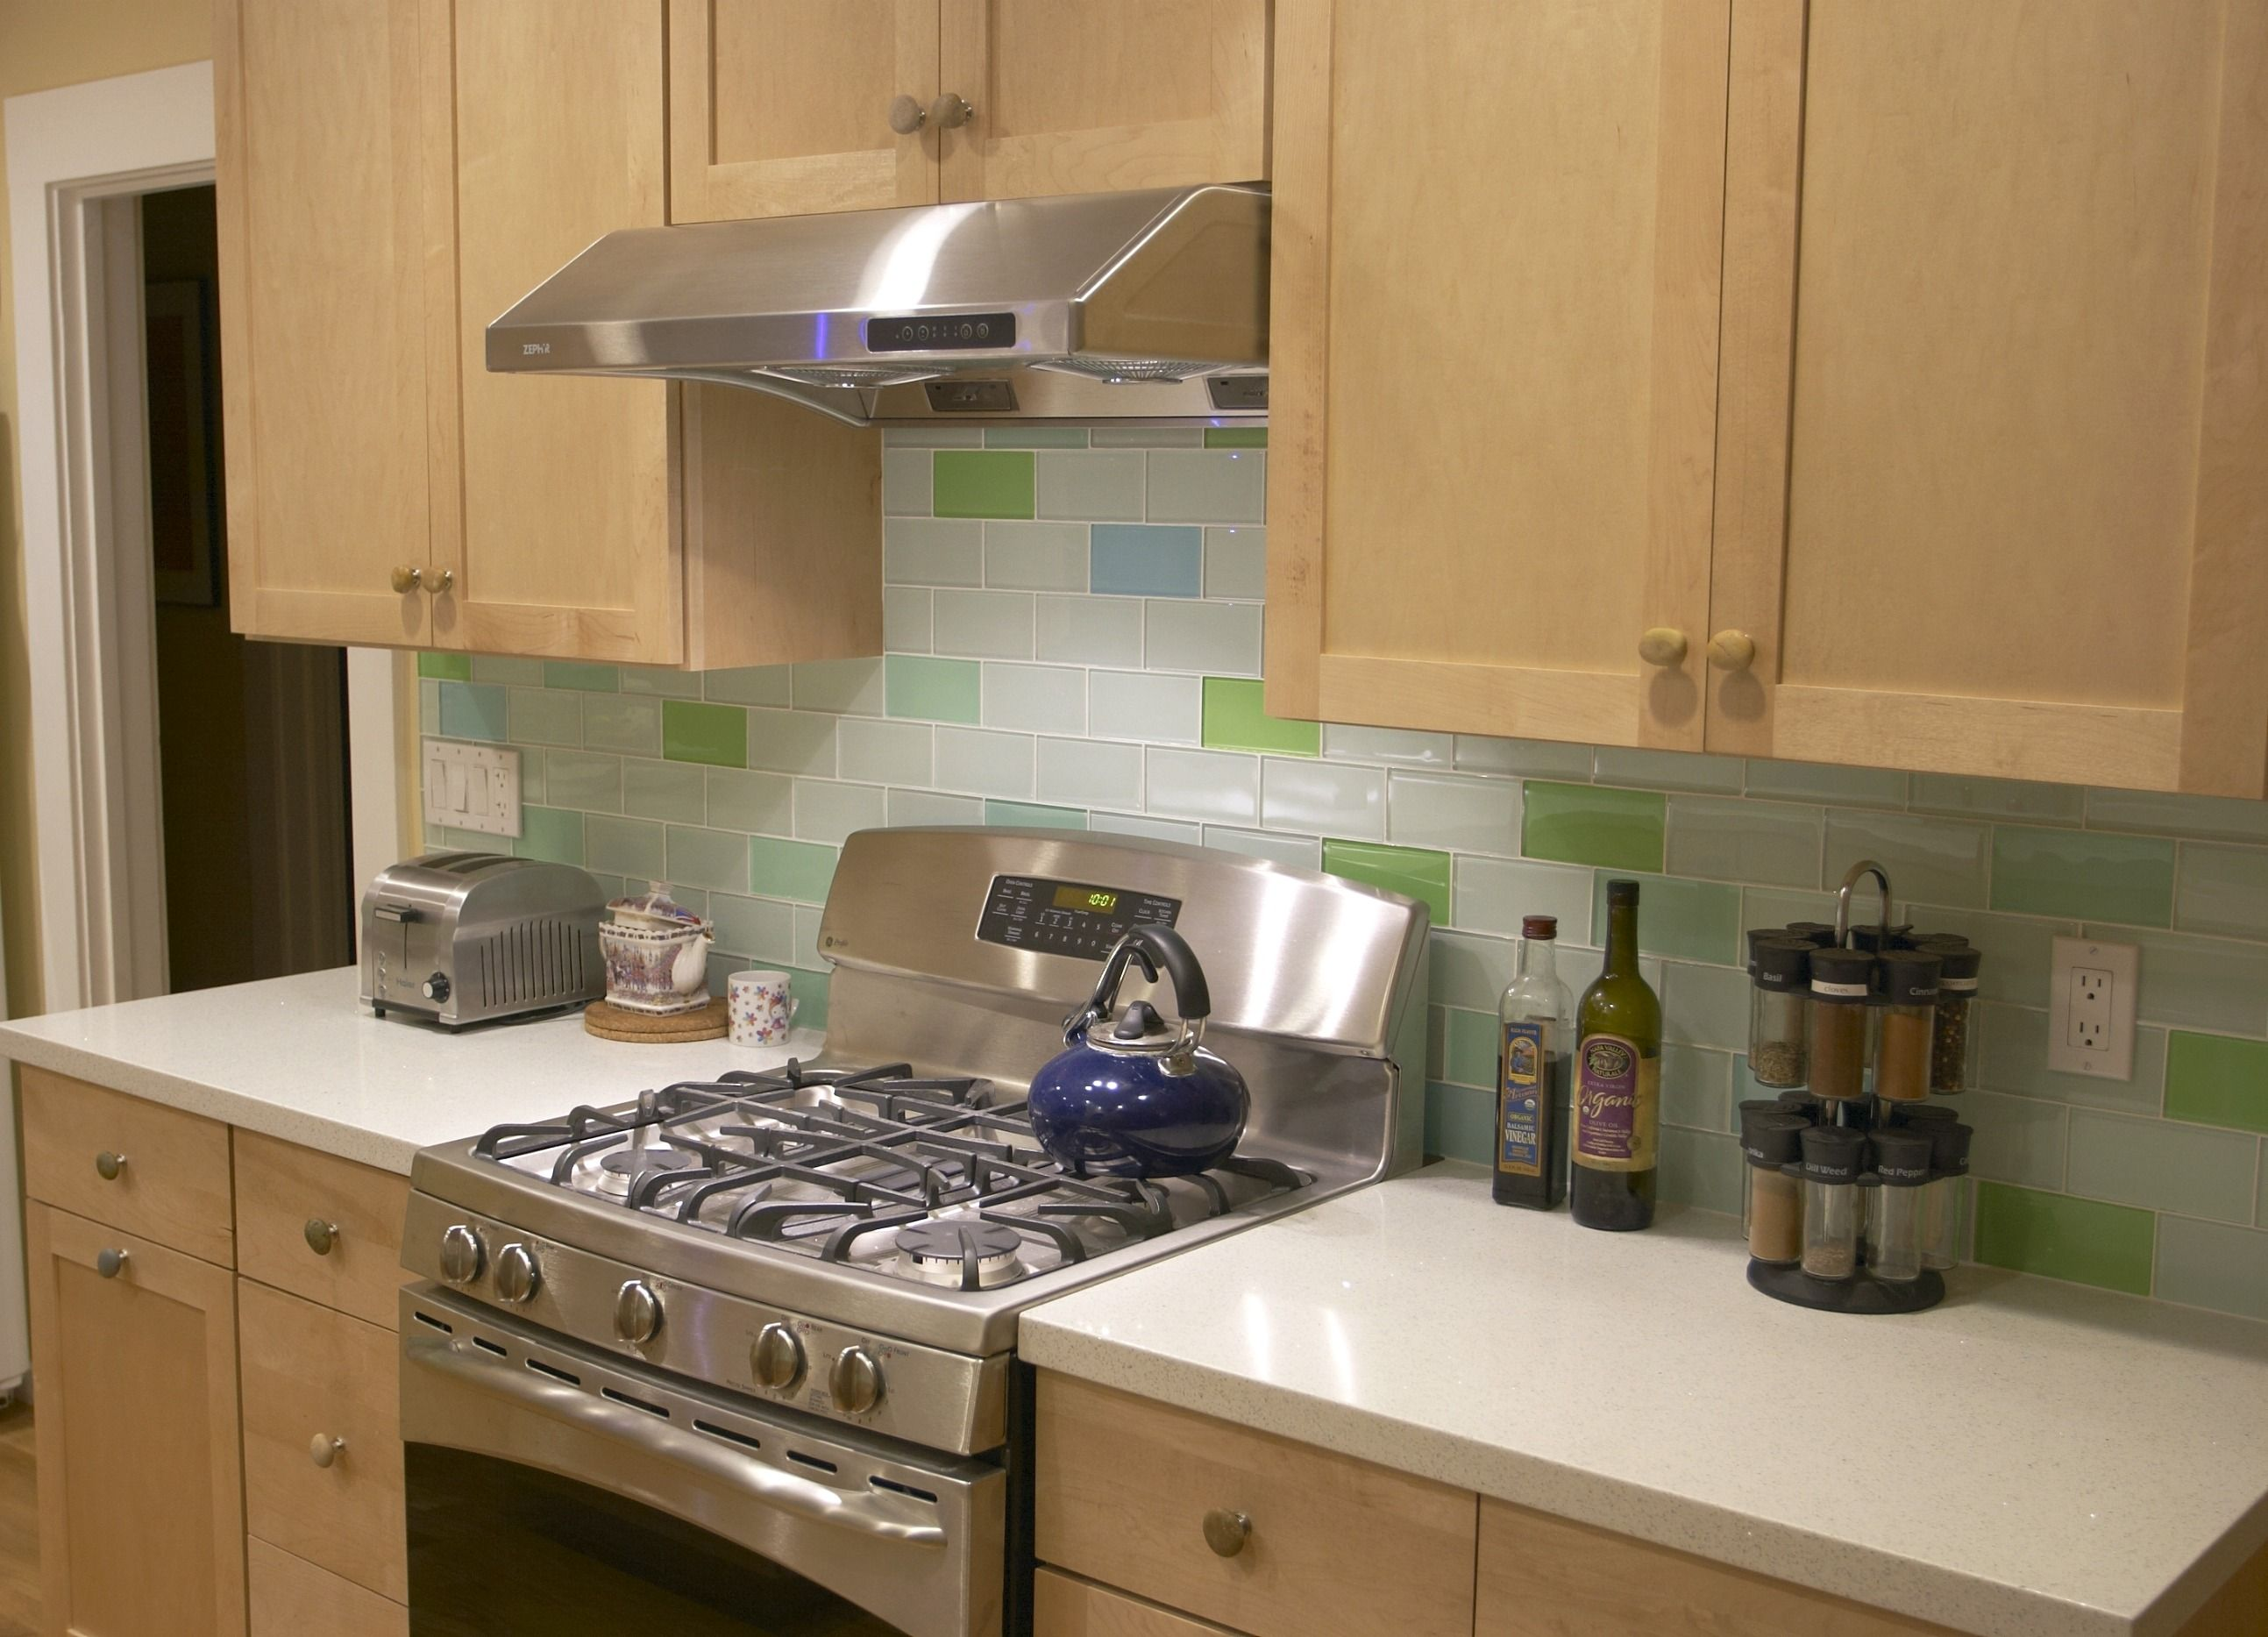 Images of bathrooms using subway tile kitchen backsplash images of bathrooms using subway tile kitchen backsplash with pops of green doublecrazyfo Choice Image